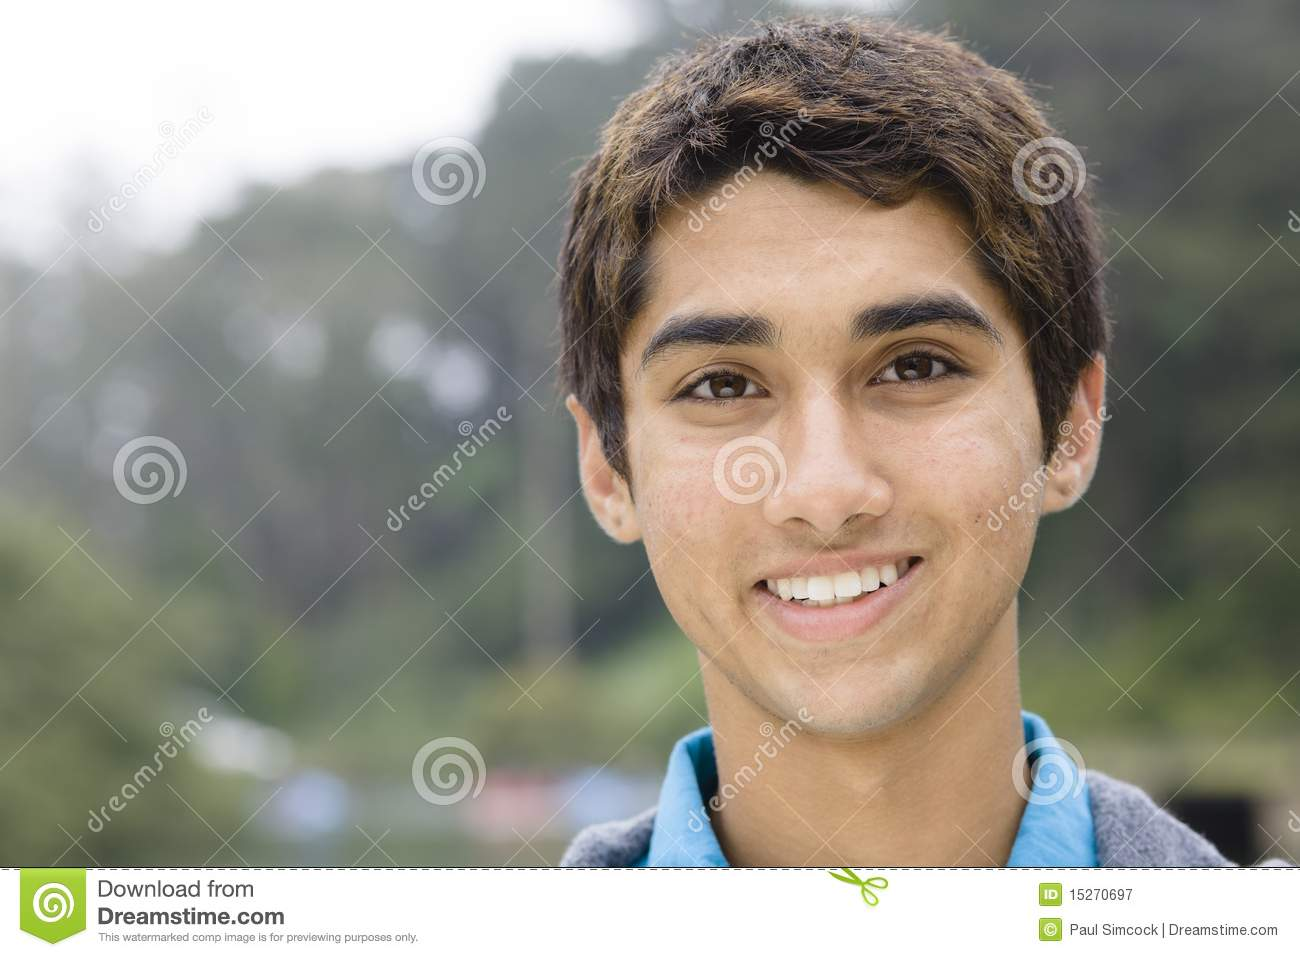 Teenage Indian Boy Stock Image Image Of Outside, Green -5187